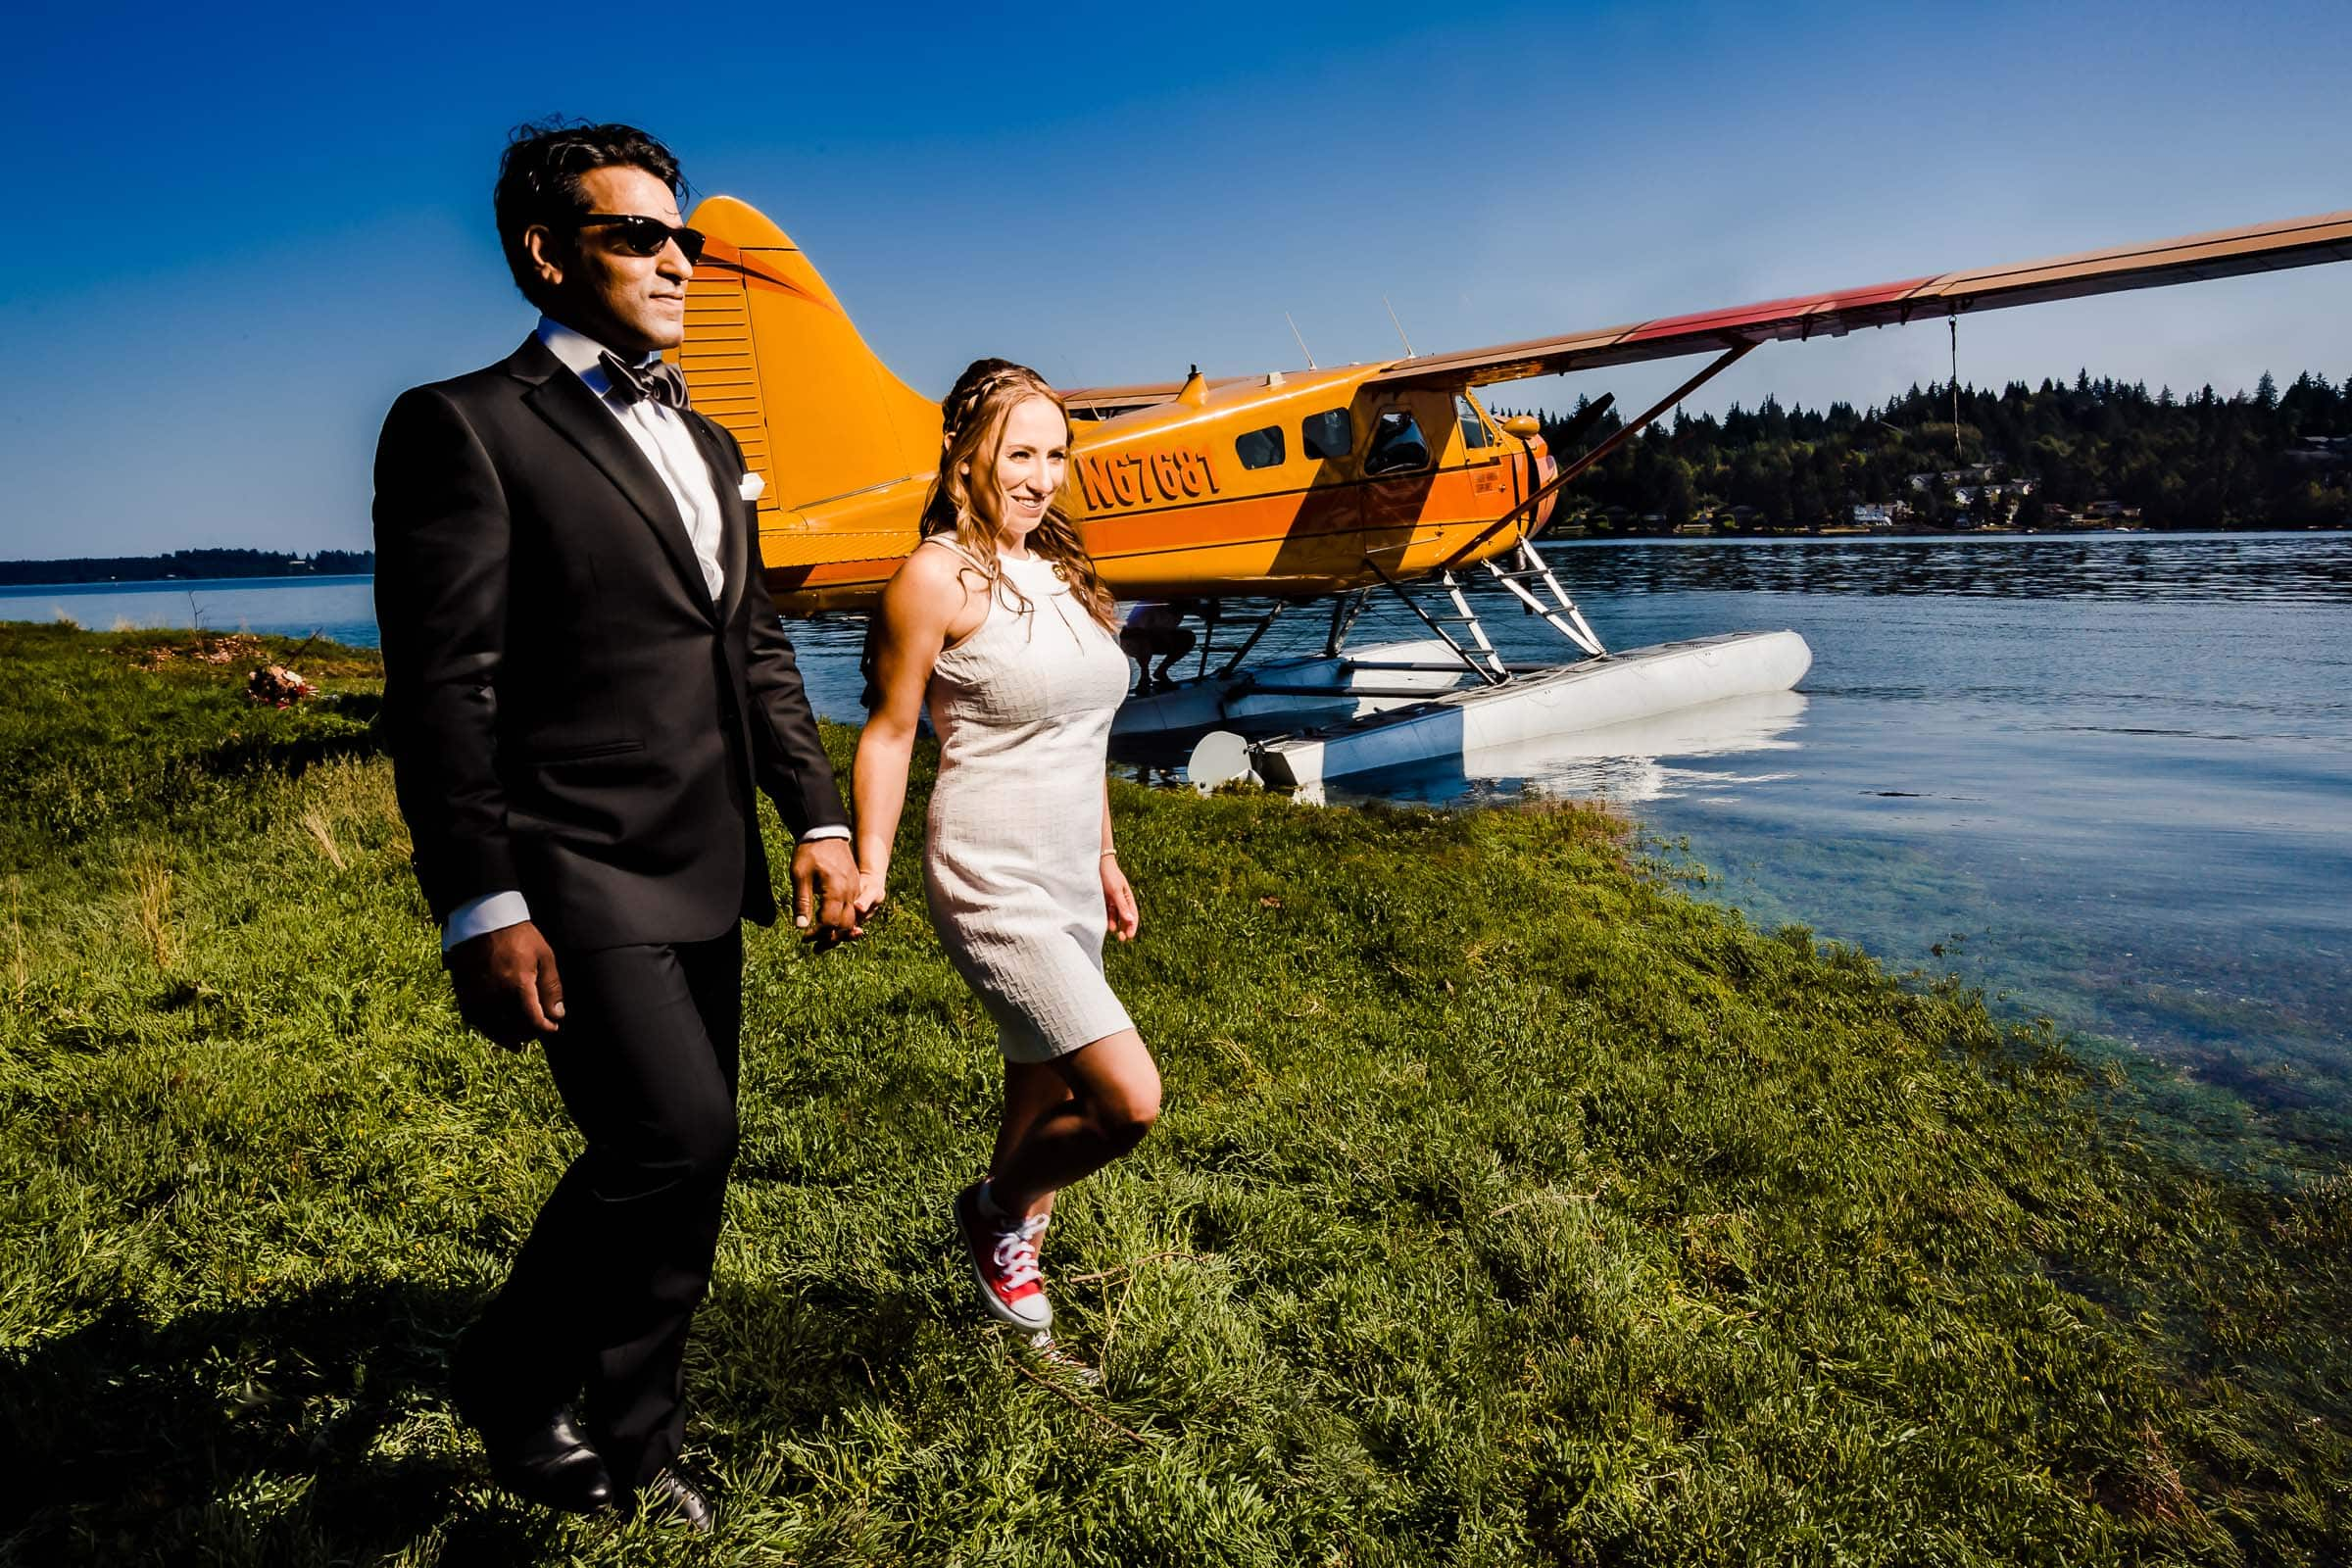 Bride and Groom walking on Hope Island together with a seaplane for their Alderbrook Elopement.